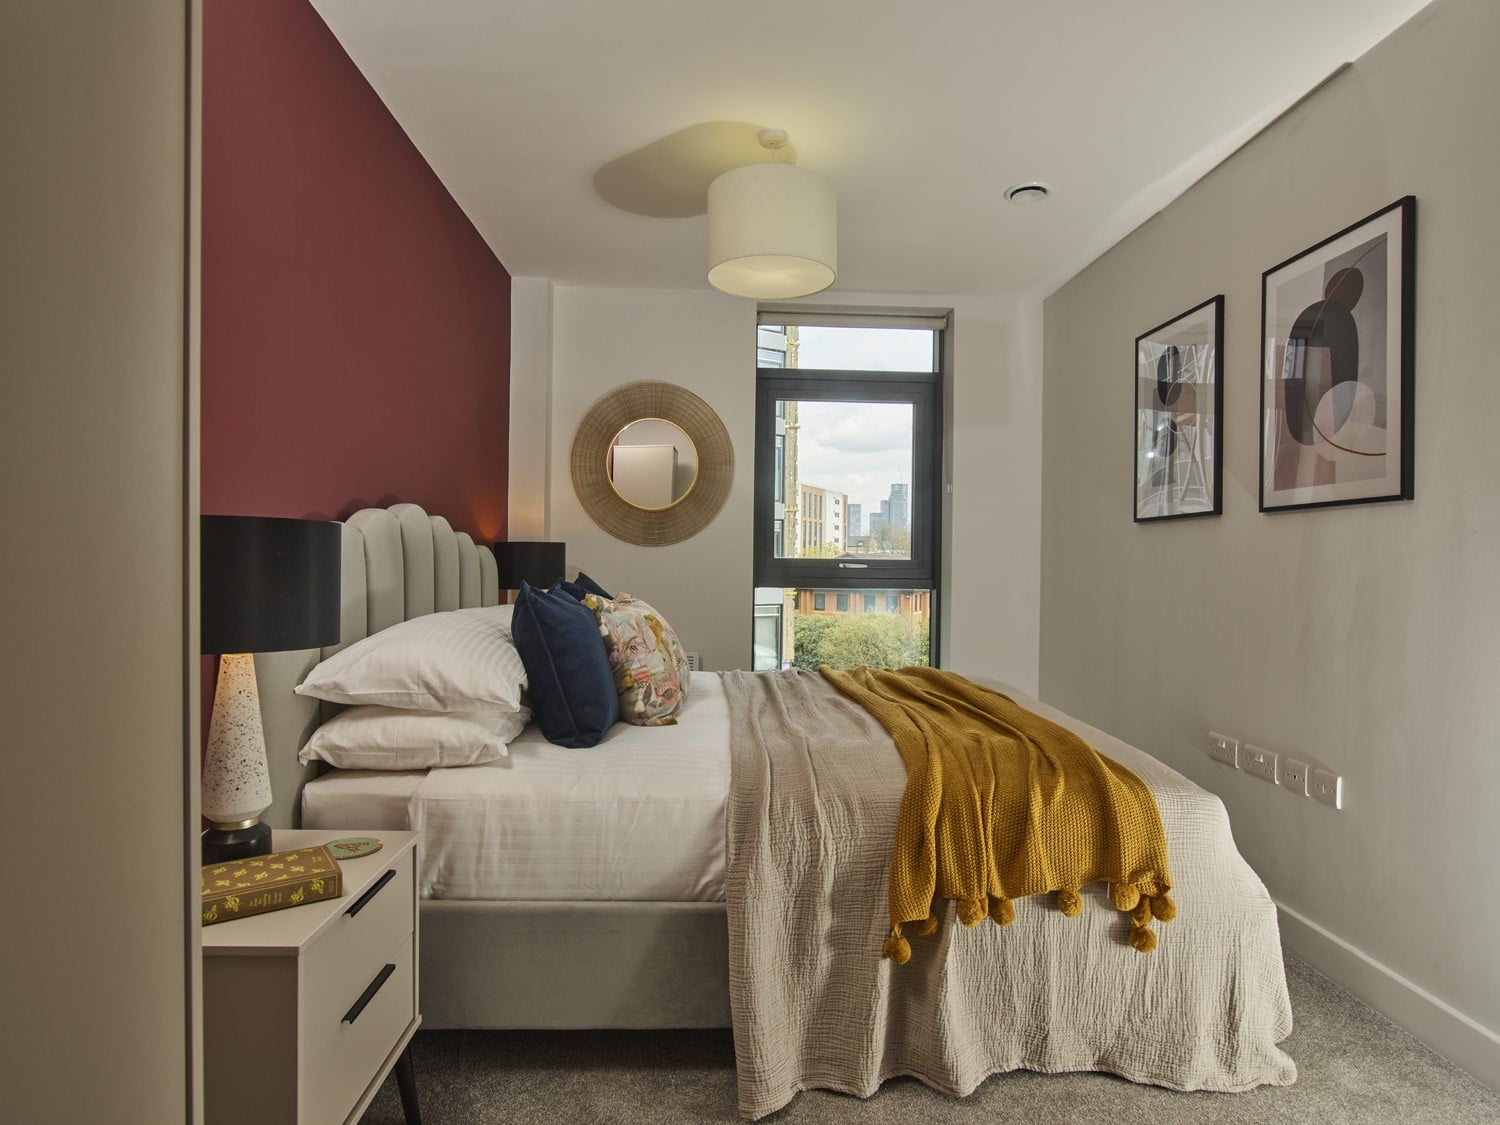 Internal photography of Clarion's Amplify Apartments - Shared Ownership and Help to Buy homes available on Share to Buy